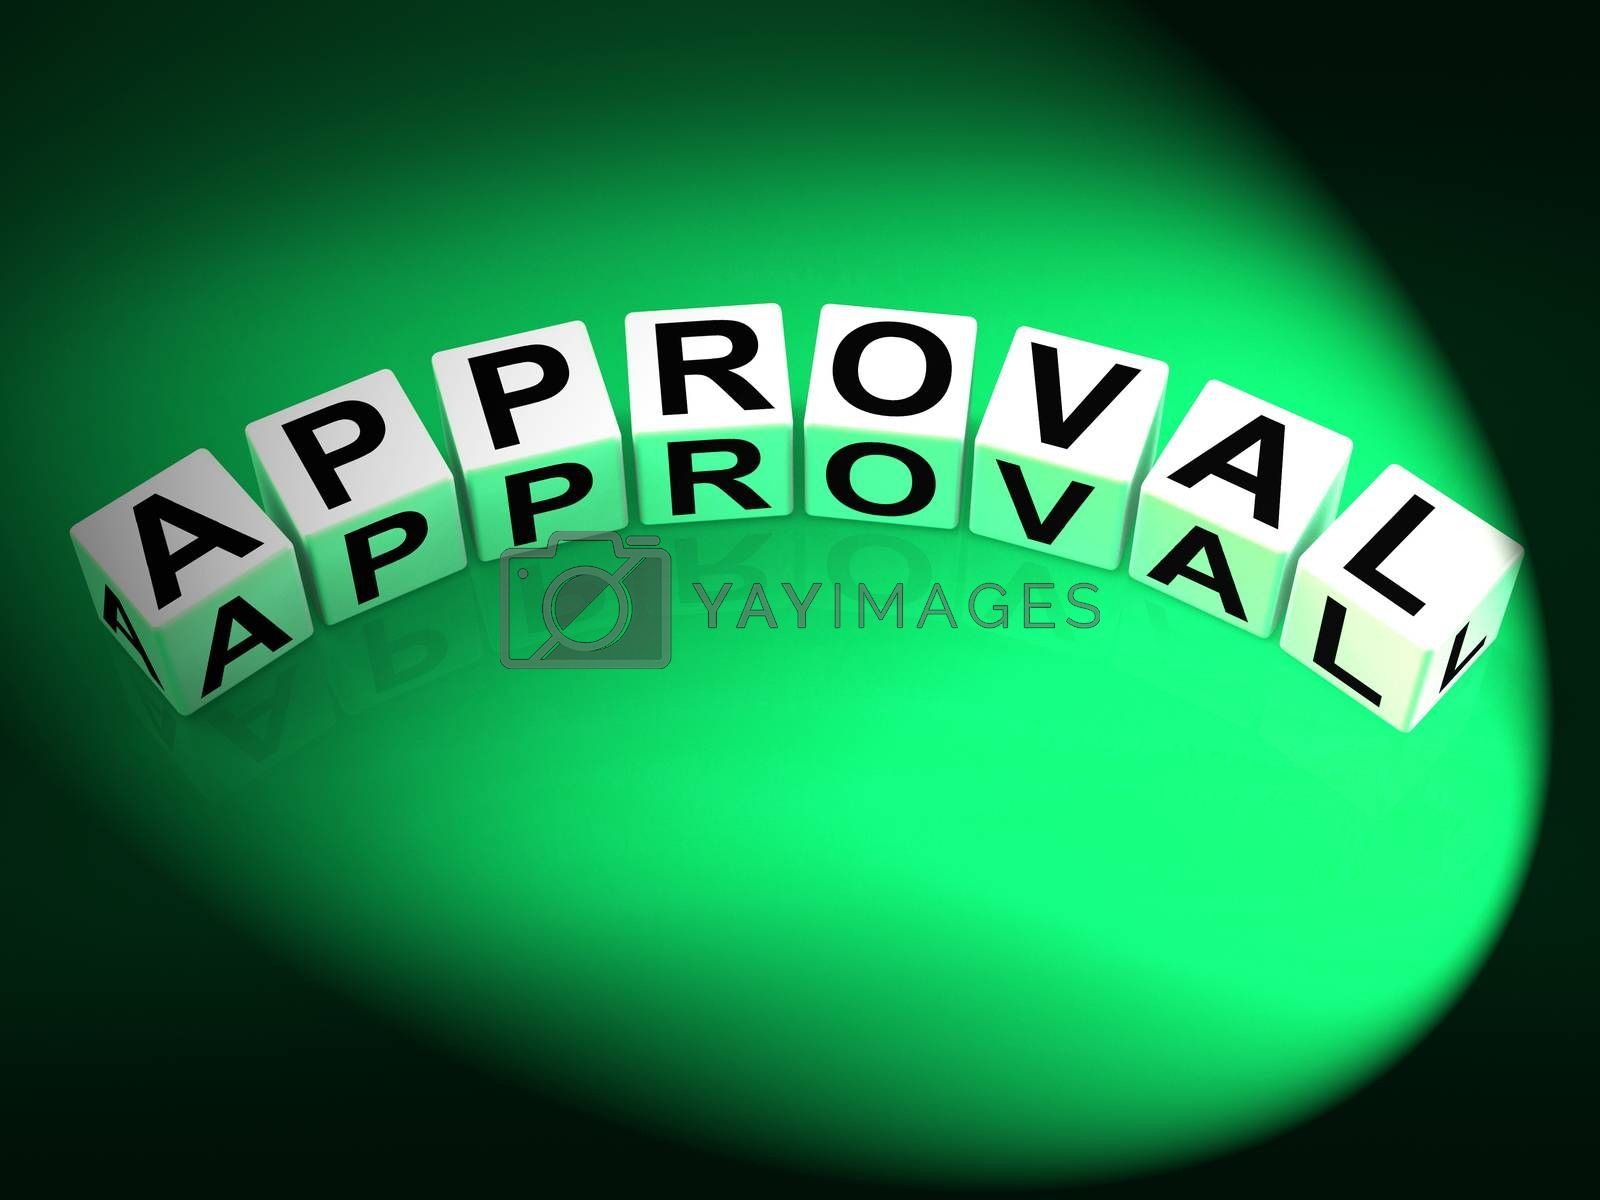 Approval Dice Show Validation Acceptance and Approved by stuartmiles